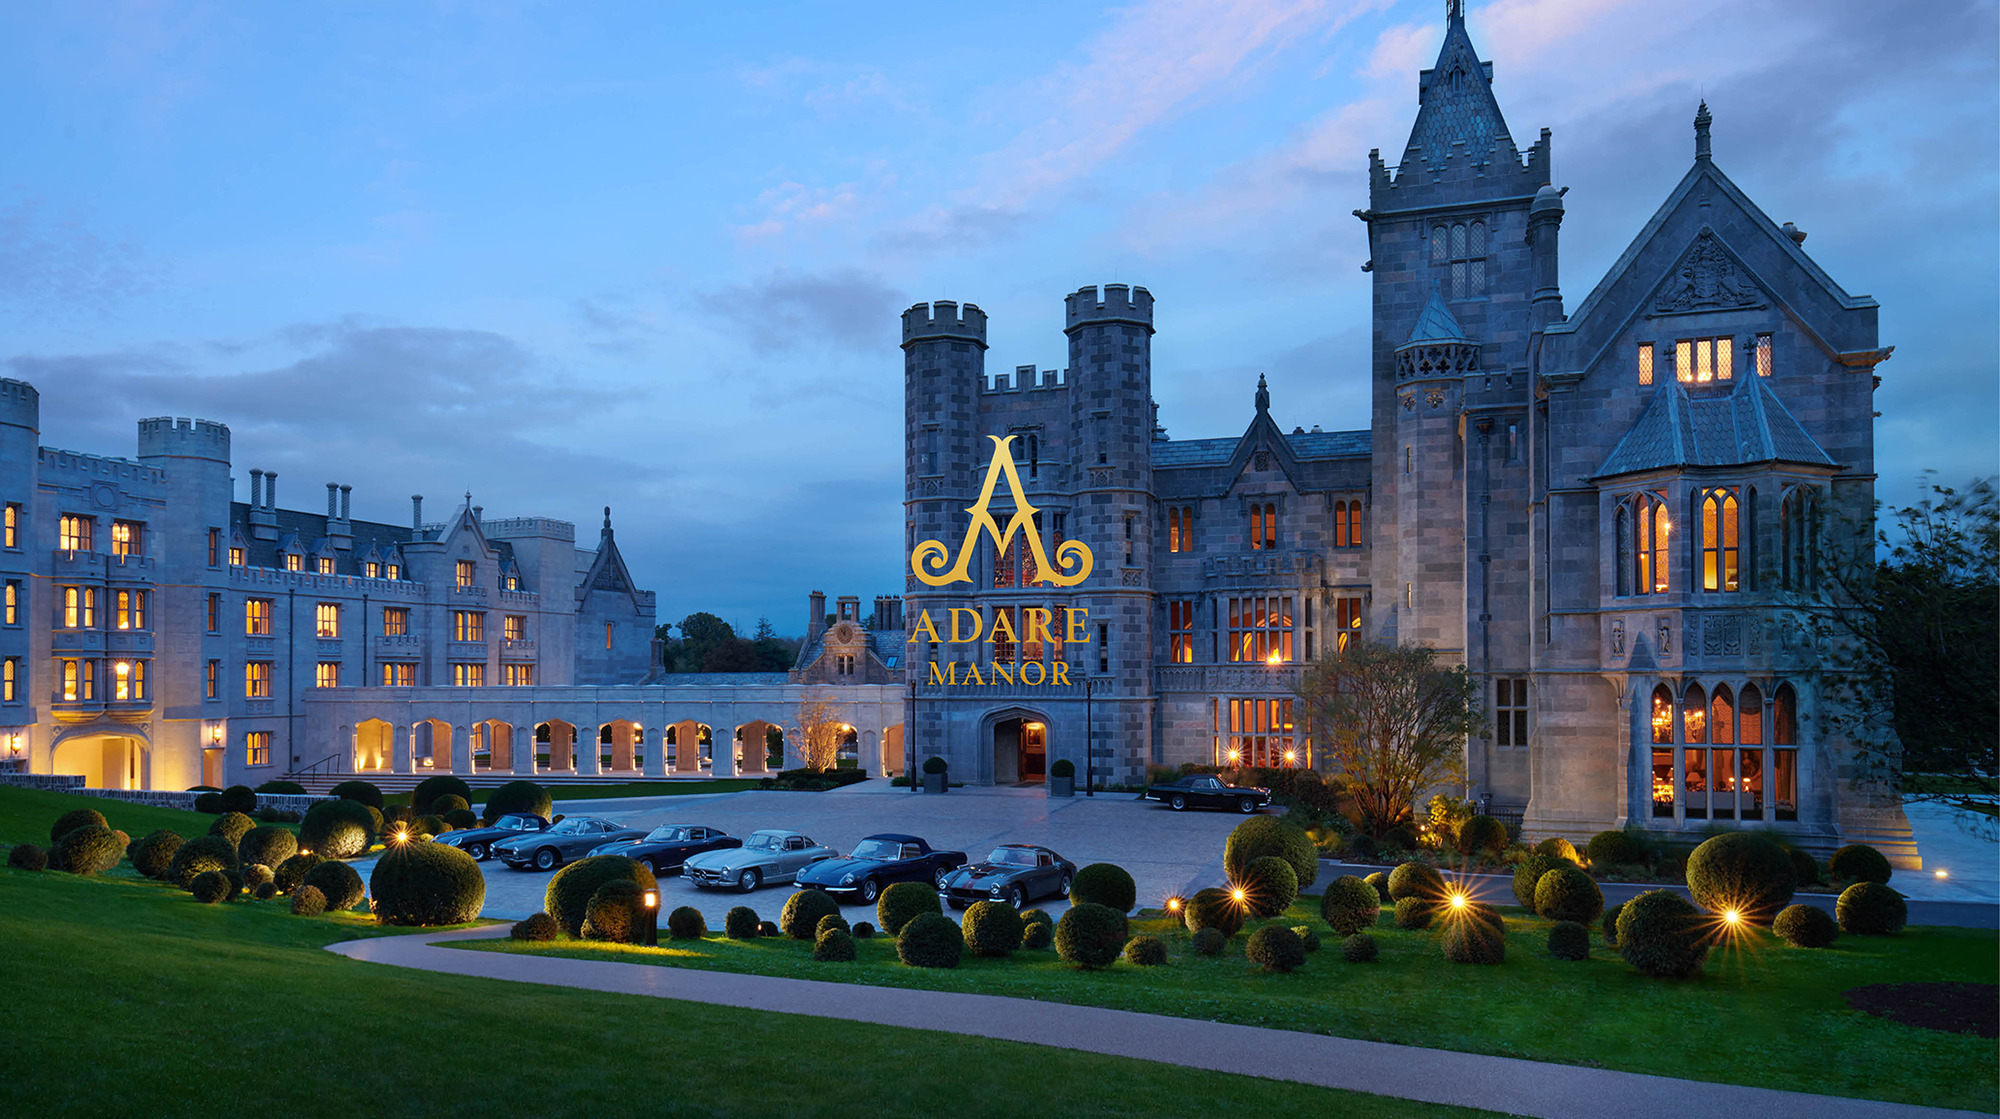 Cover image: Adare Manor